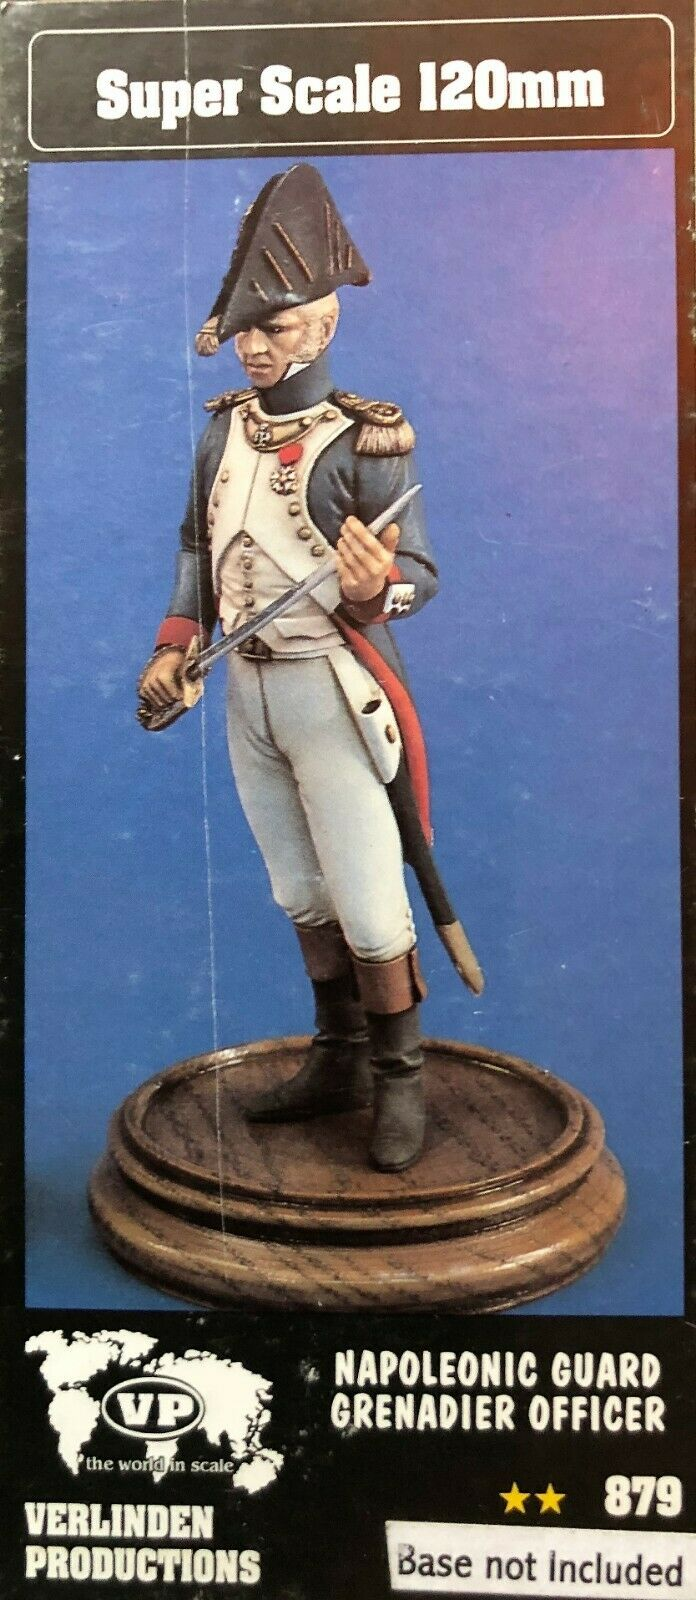 120MM 1 16 RESIN FIGURE VERLINDEN 879 NAPOLEONIC  GUARD GRENADIER OFFICER. nouveau.  beaucoup de concessions